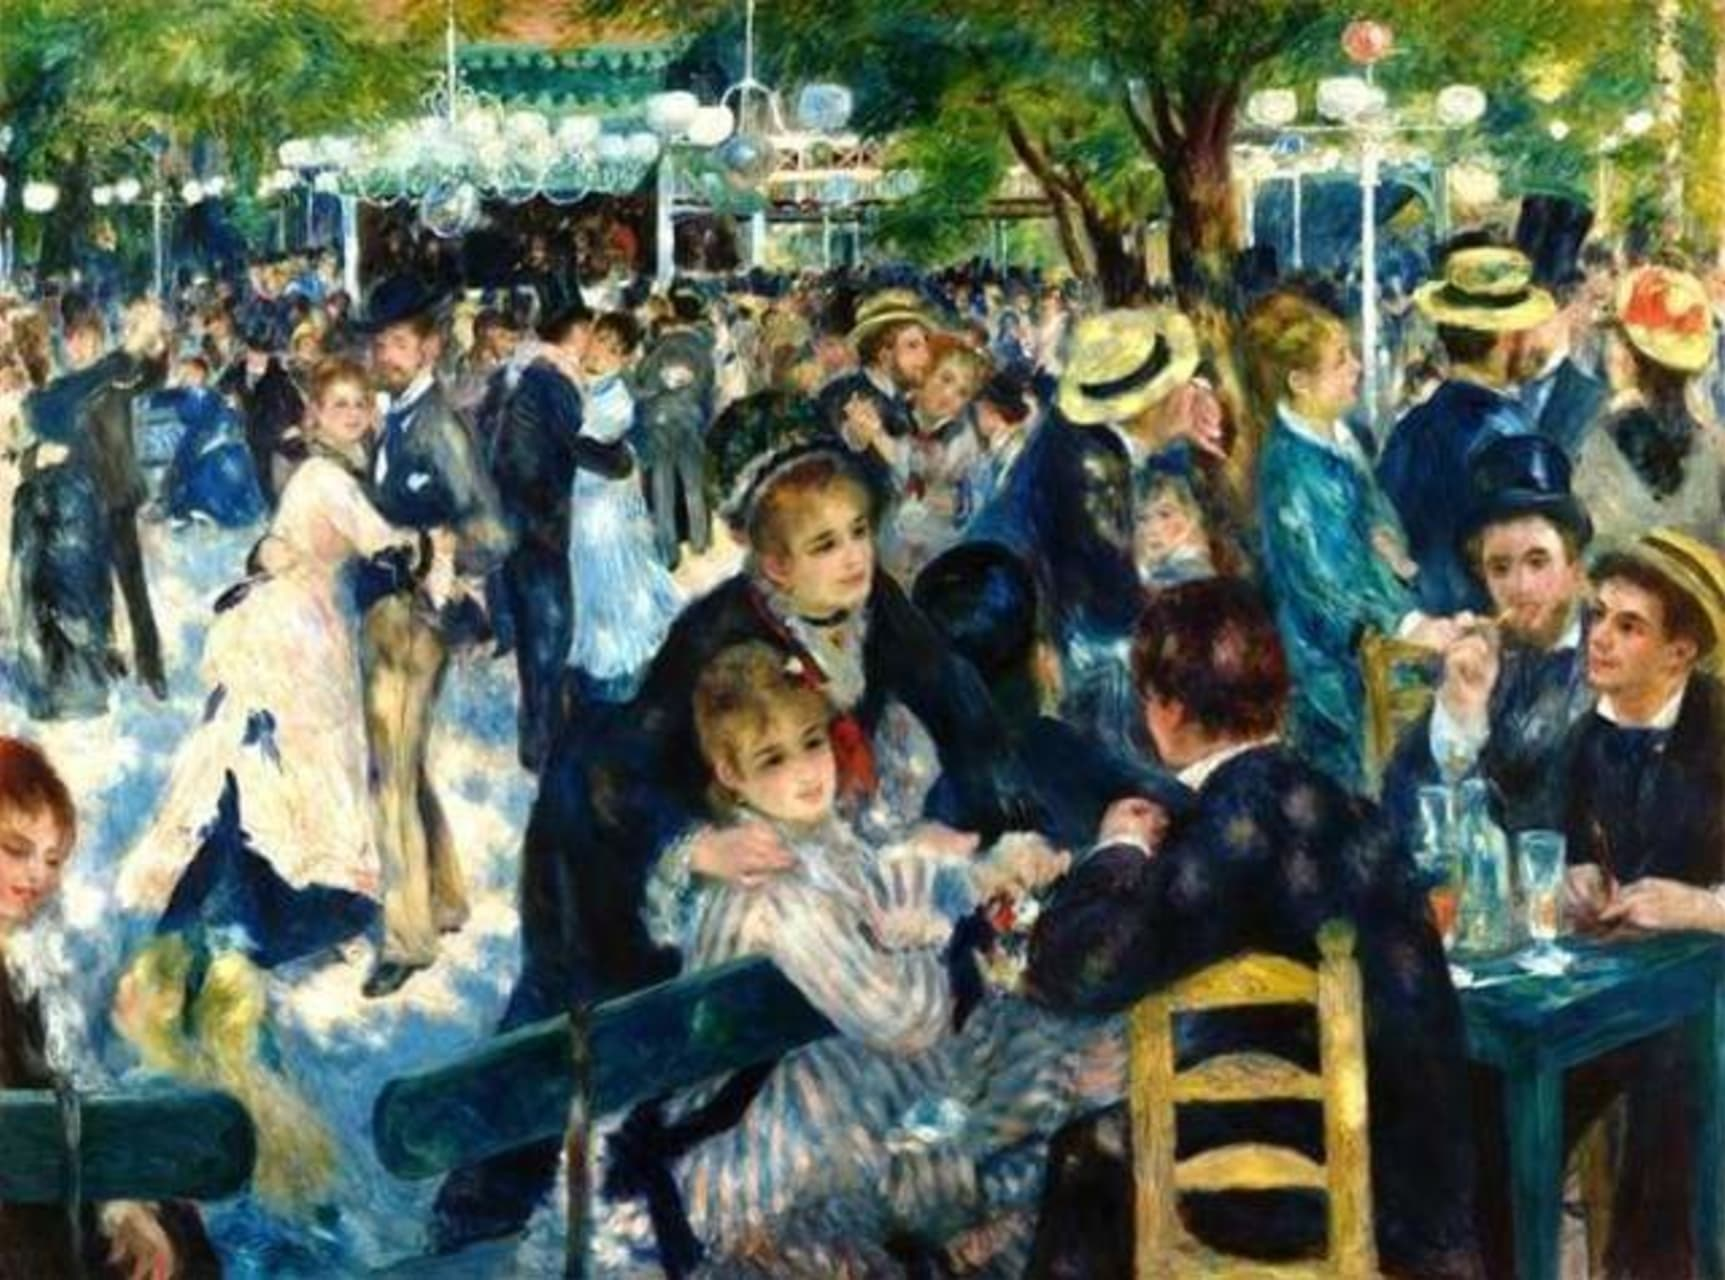 Paris - The Impressionists at the Orsay Museum